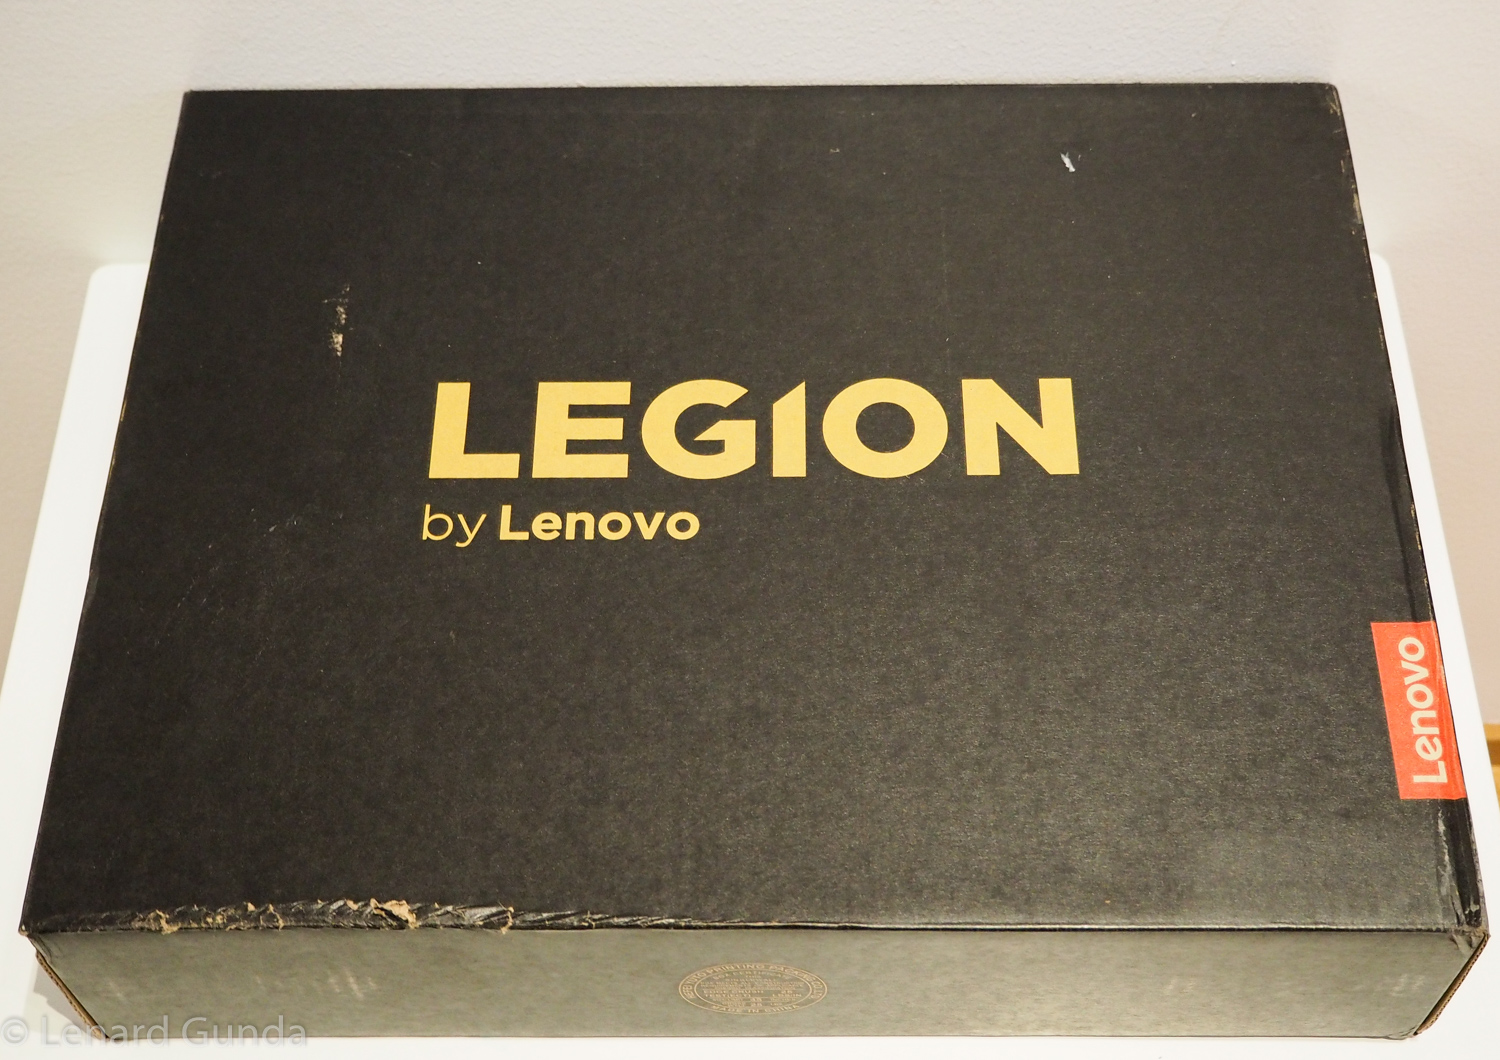 Legion Y520 review - LenardGunda com